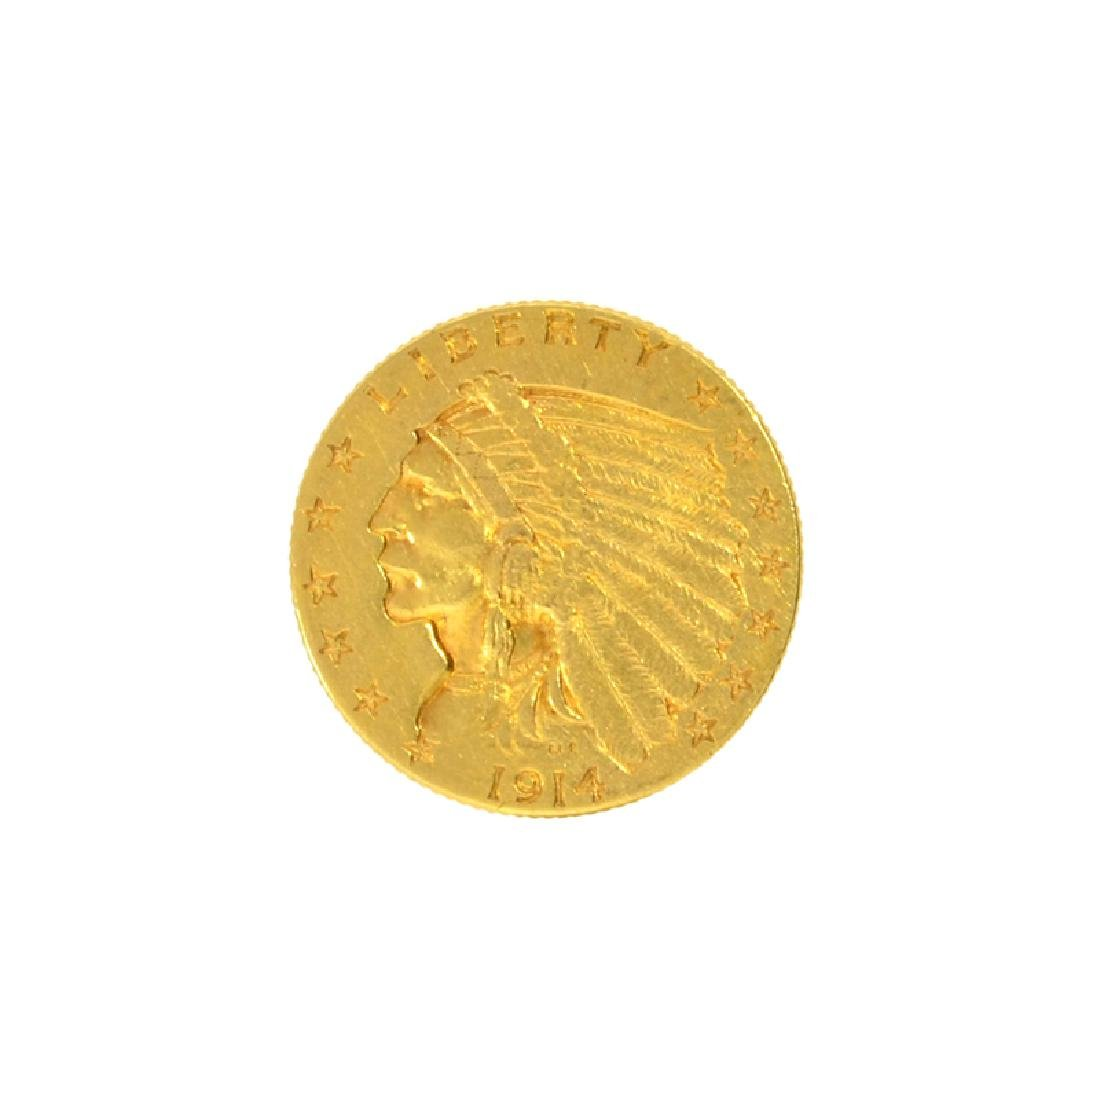 *1914-D $2.50 U.S. Indian Head Gold Coin (DF)